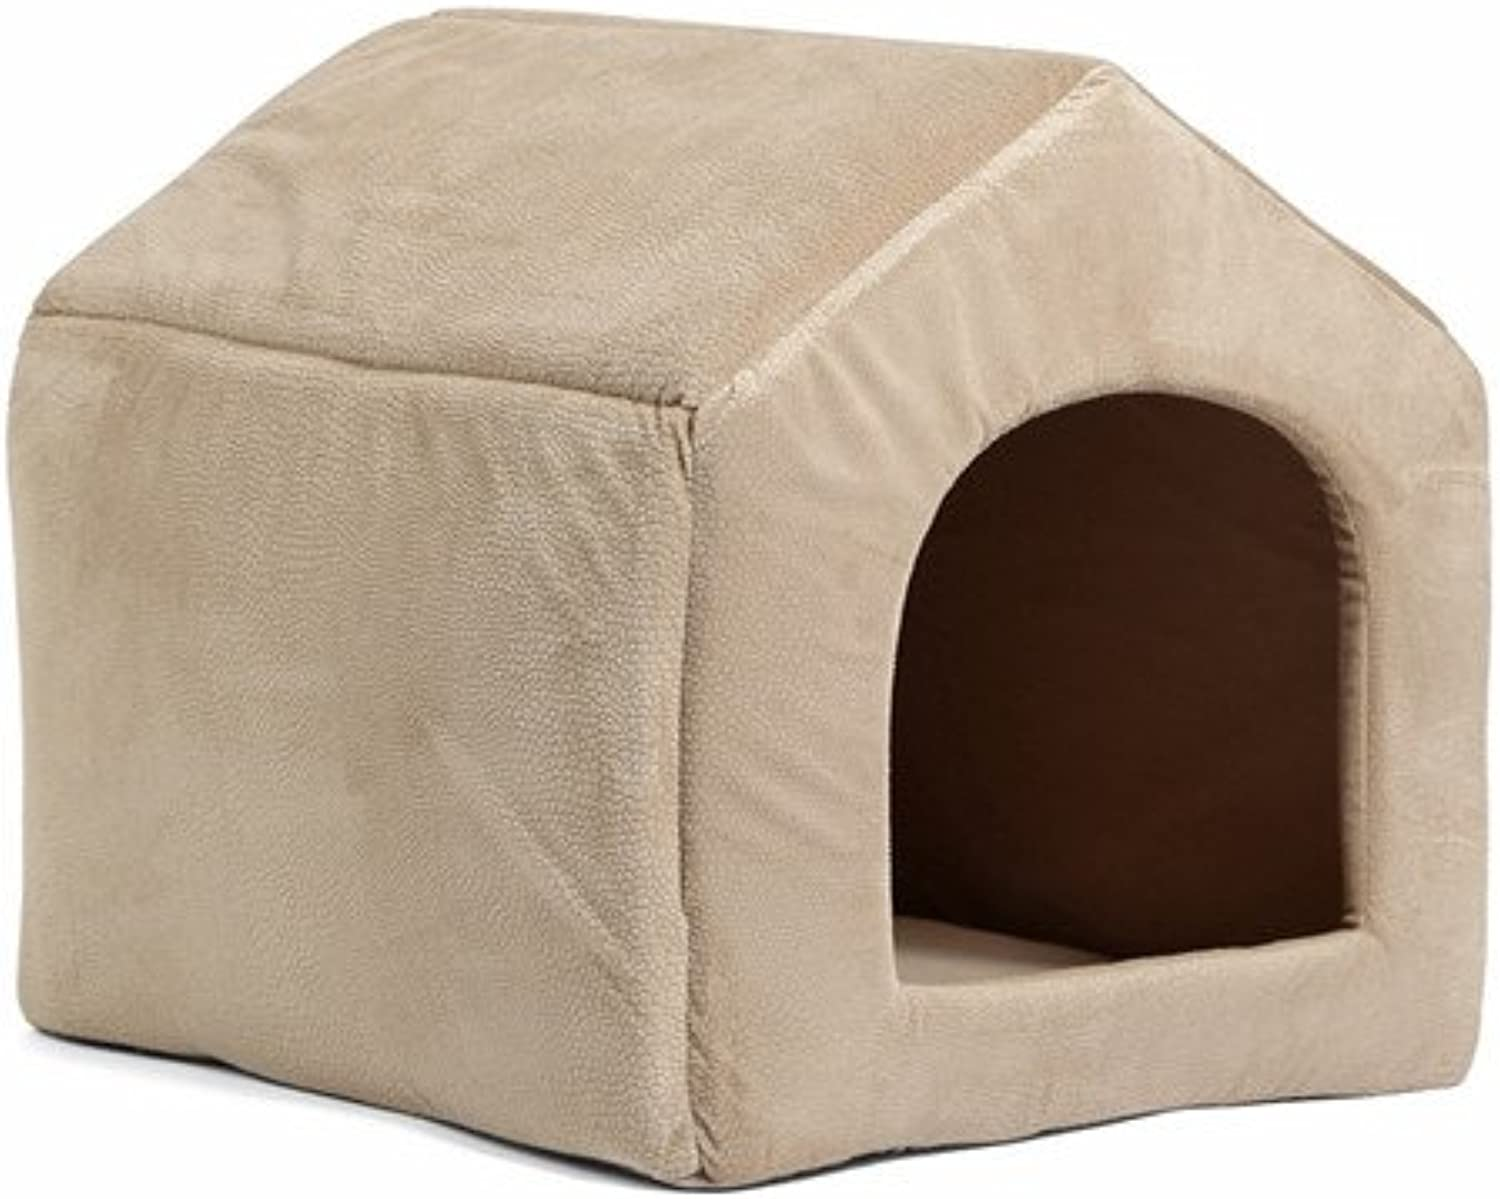 Cookisn Pet Products Luxury Dog House Cozy Dog Bed Puppy Kennel 5 color Pet Sleeping Bed Cat Cushion Kitten Mats Pet Shop Beige L